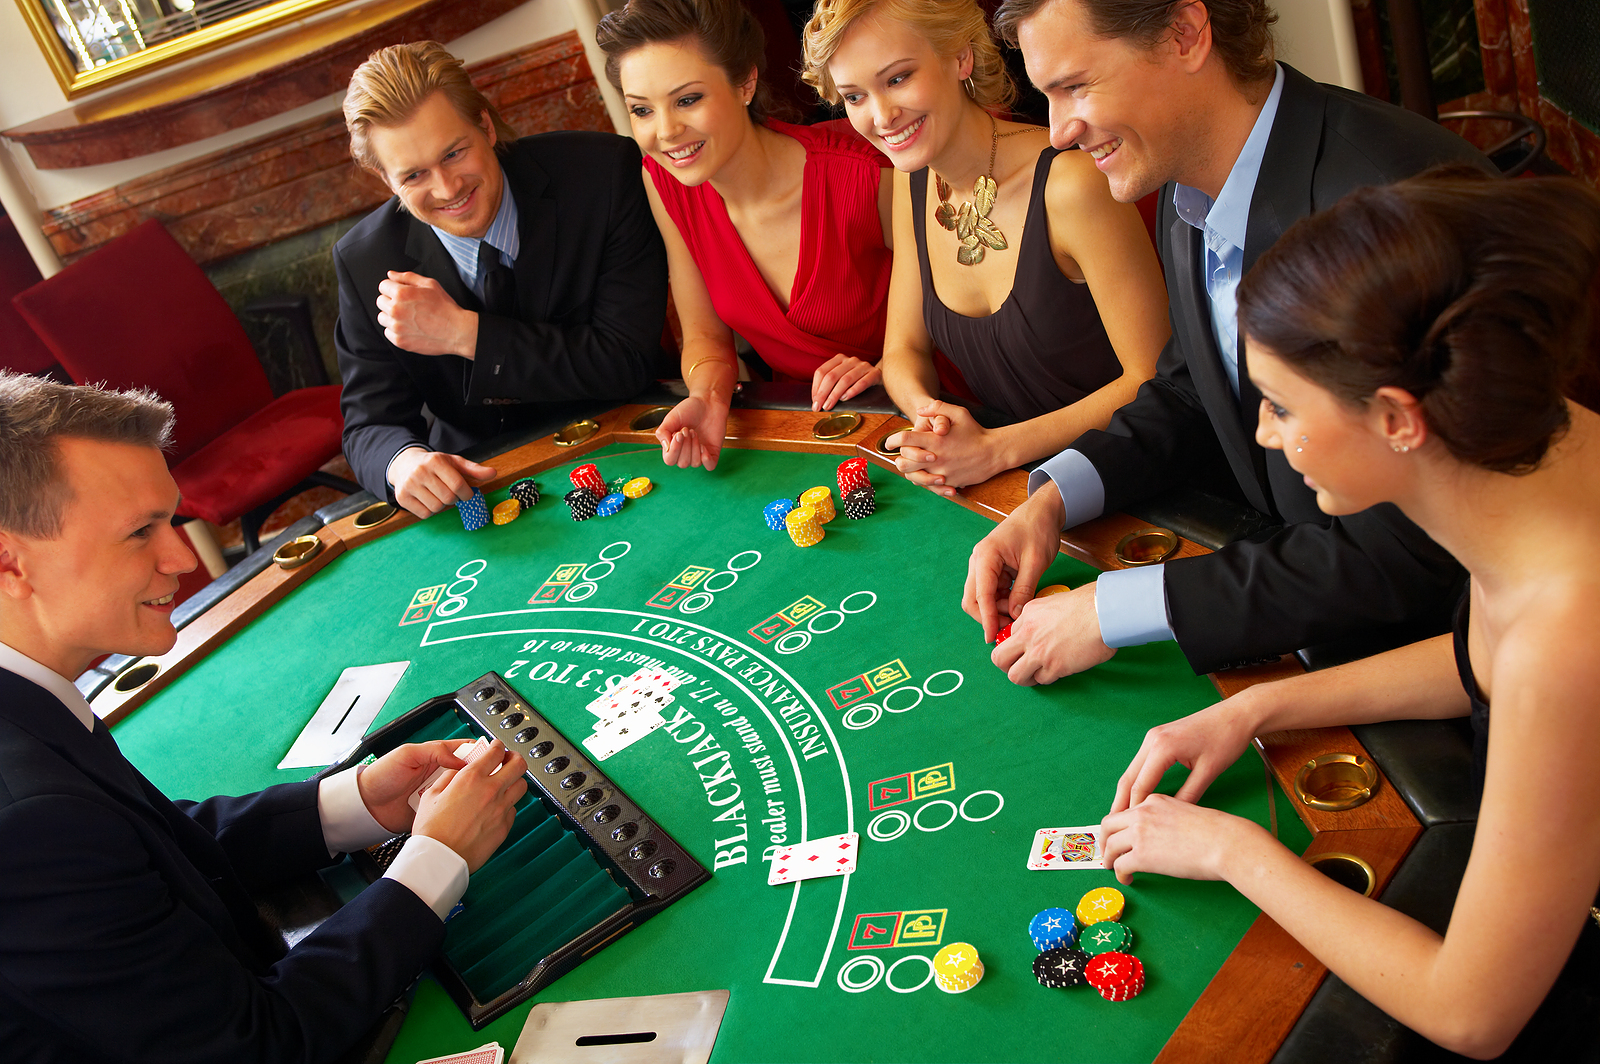 how to play online casino jetstspielen.de